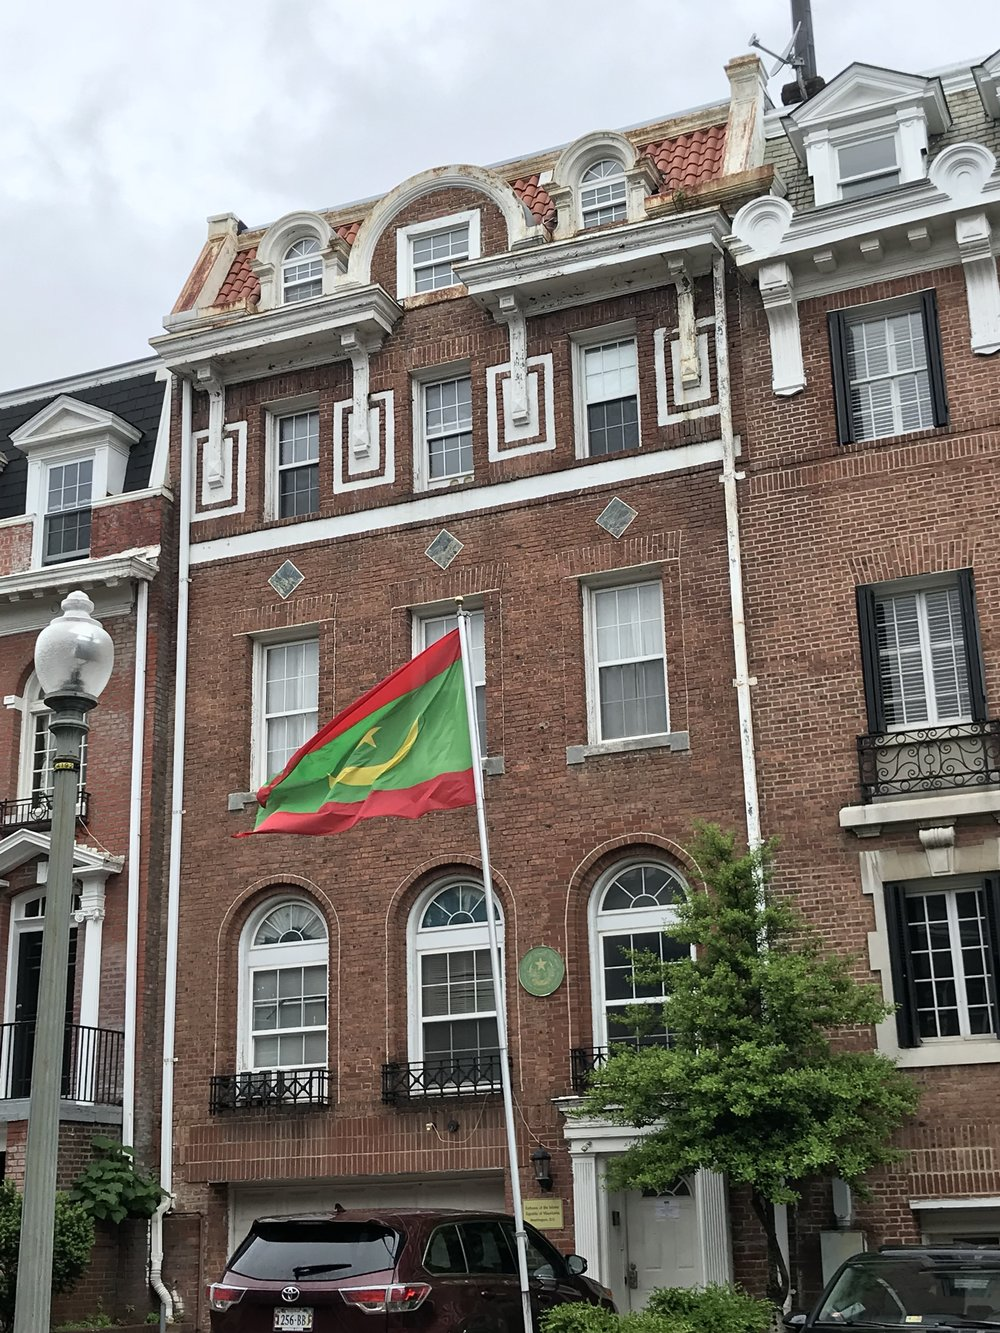 The Embassy of Mauritania.